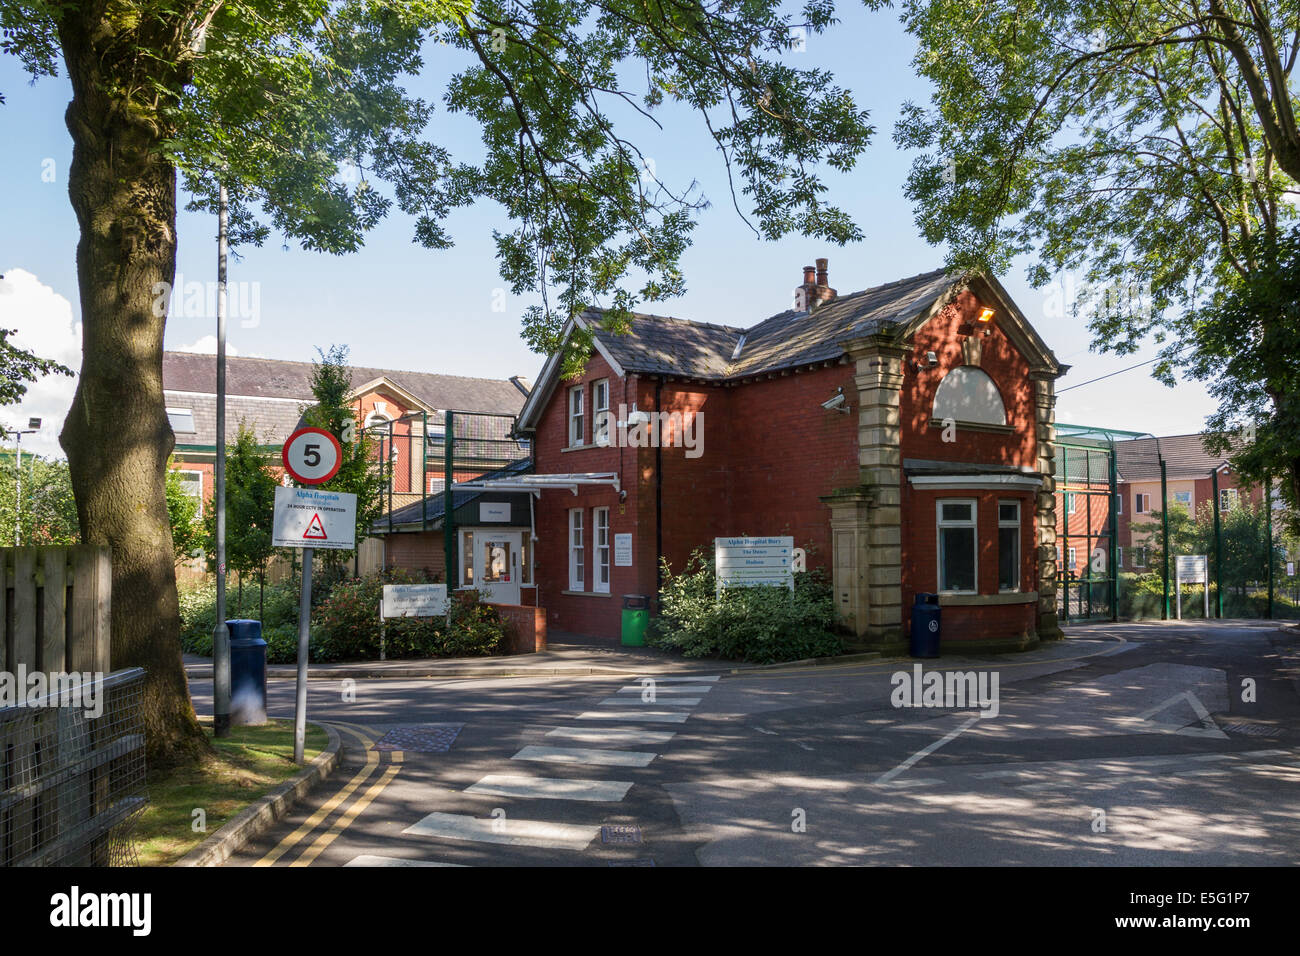 Alpha private mental health care hospital in Bury, Lancashire - Stock Image